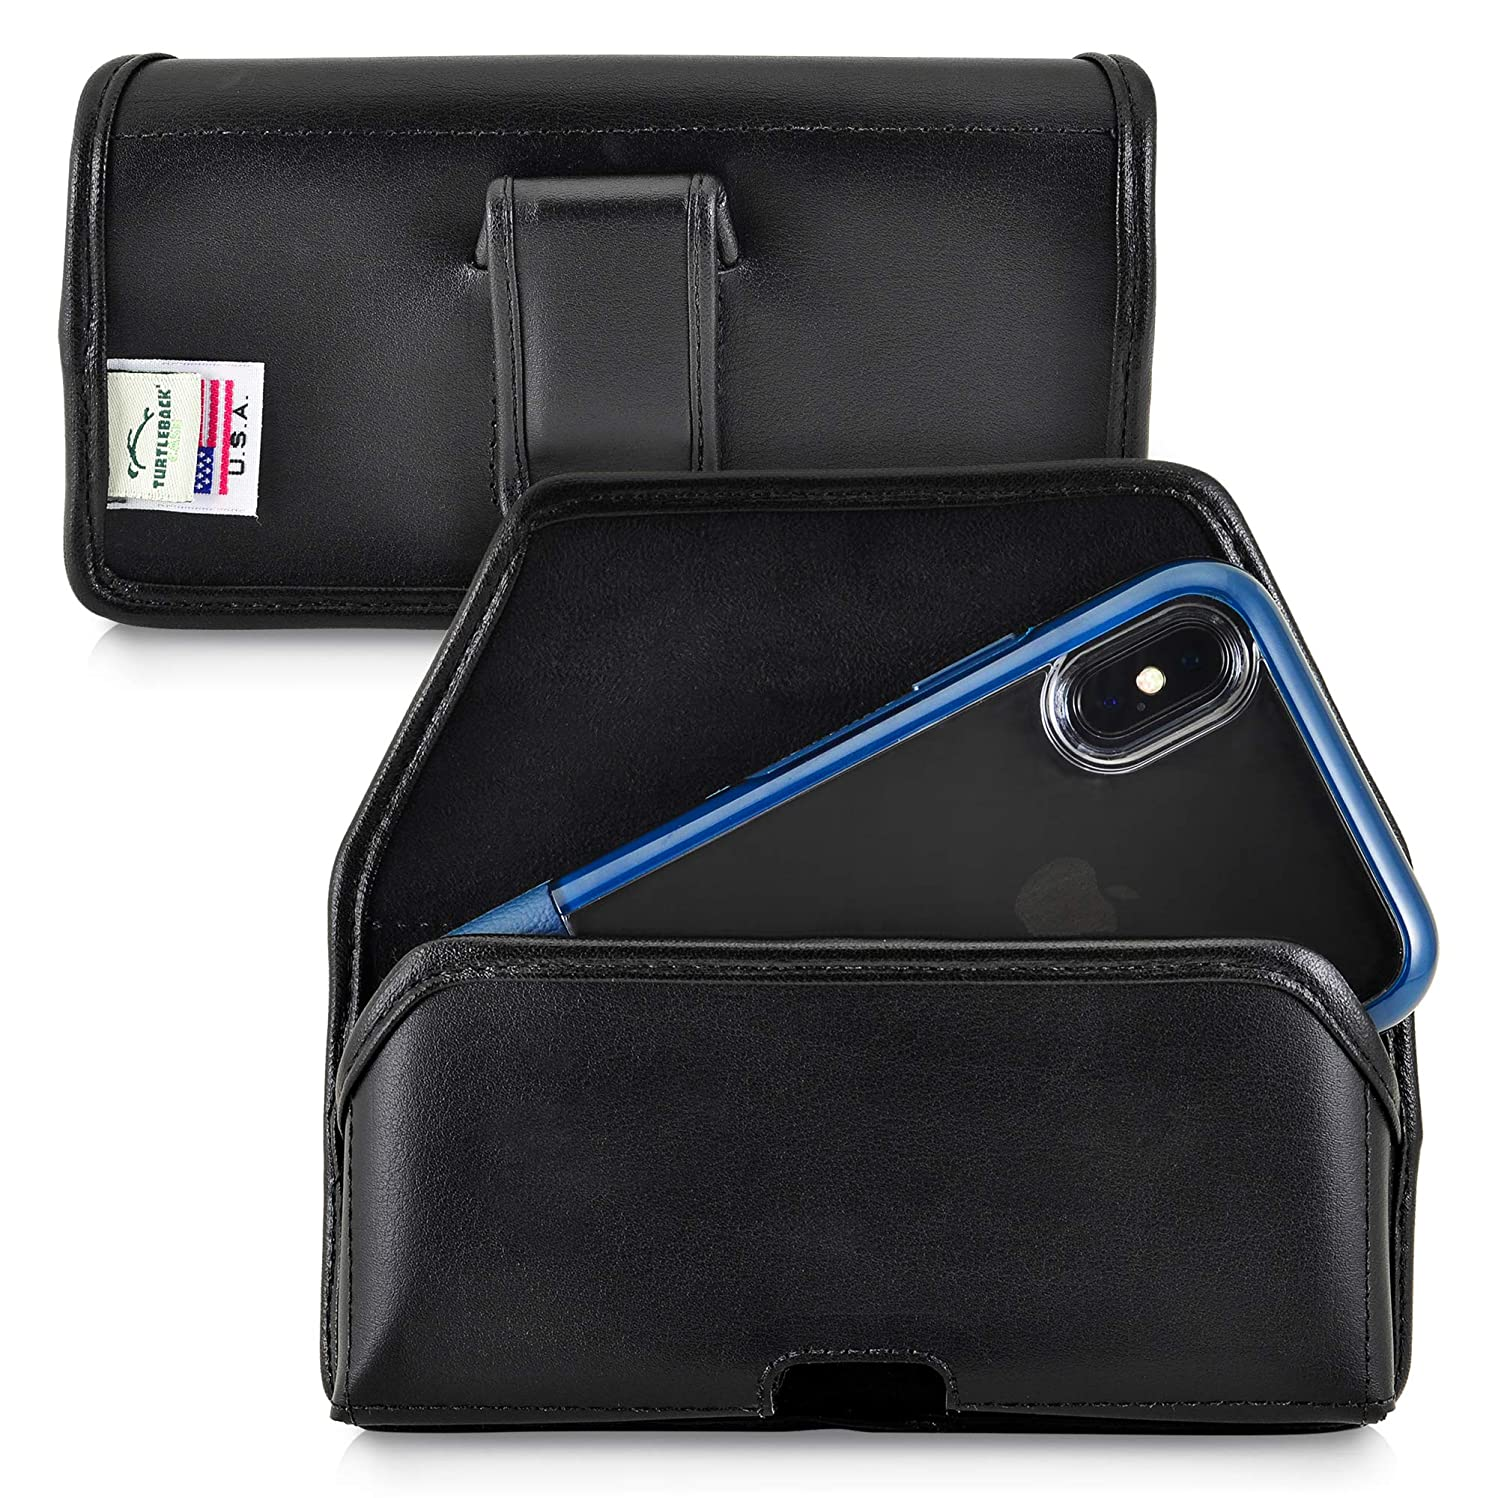 Turtleback Holster Designed for iPhone Xs (2018) Fits with OTTERBOX Statement, Black Leather Belt Case Pouch with Executive Belt Clip, Horizontal Made in USA